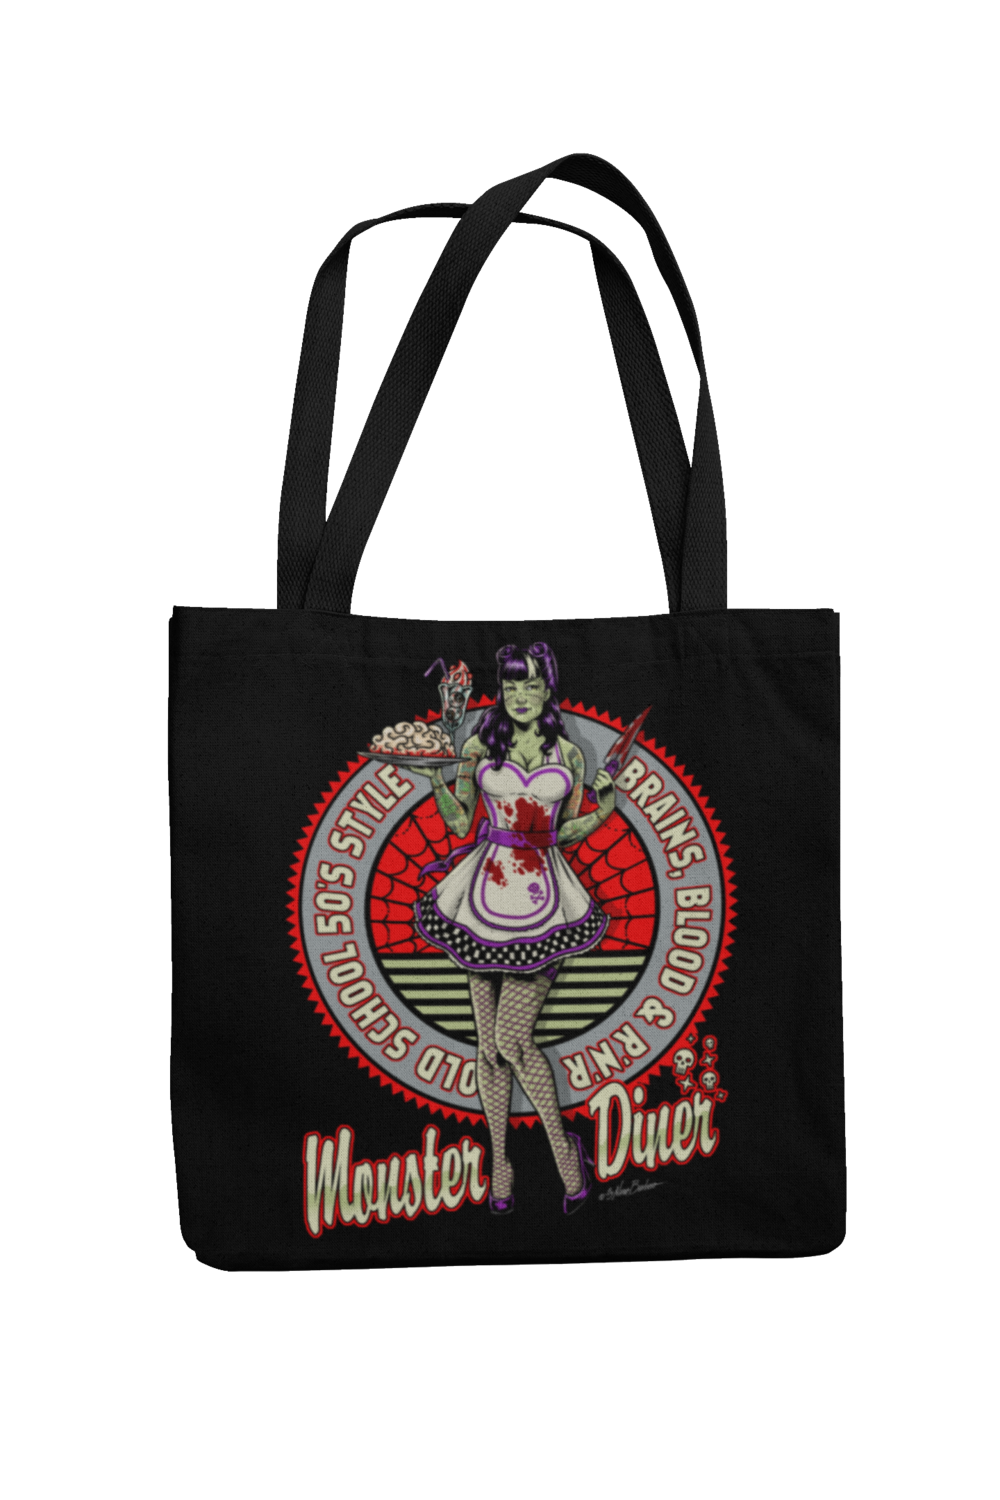 Cotton Bag Monster Diner design by NANO BARBERO